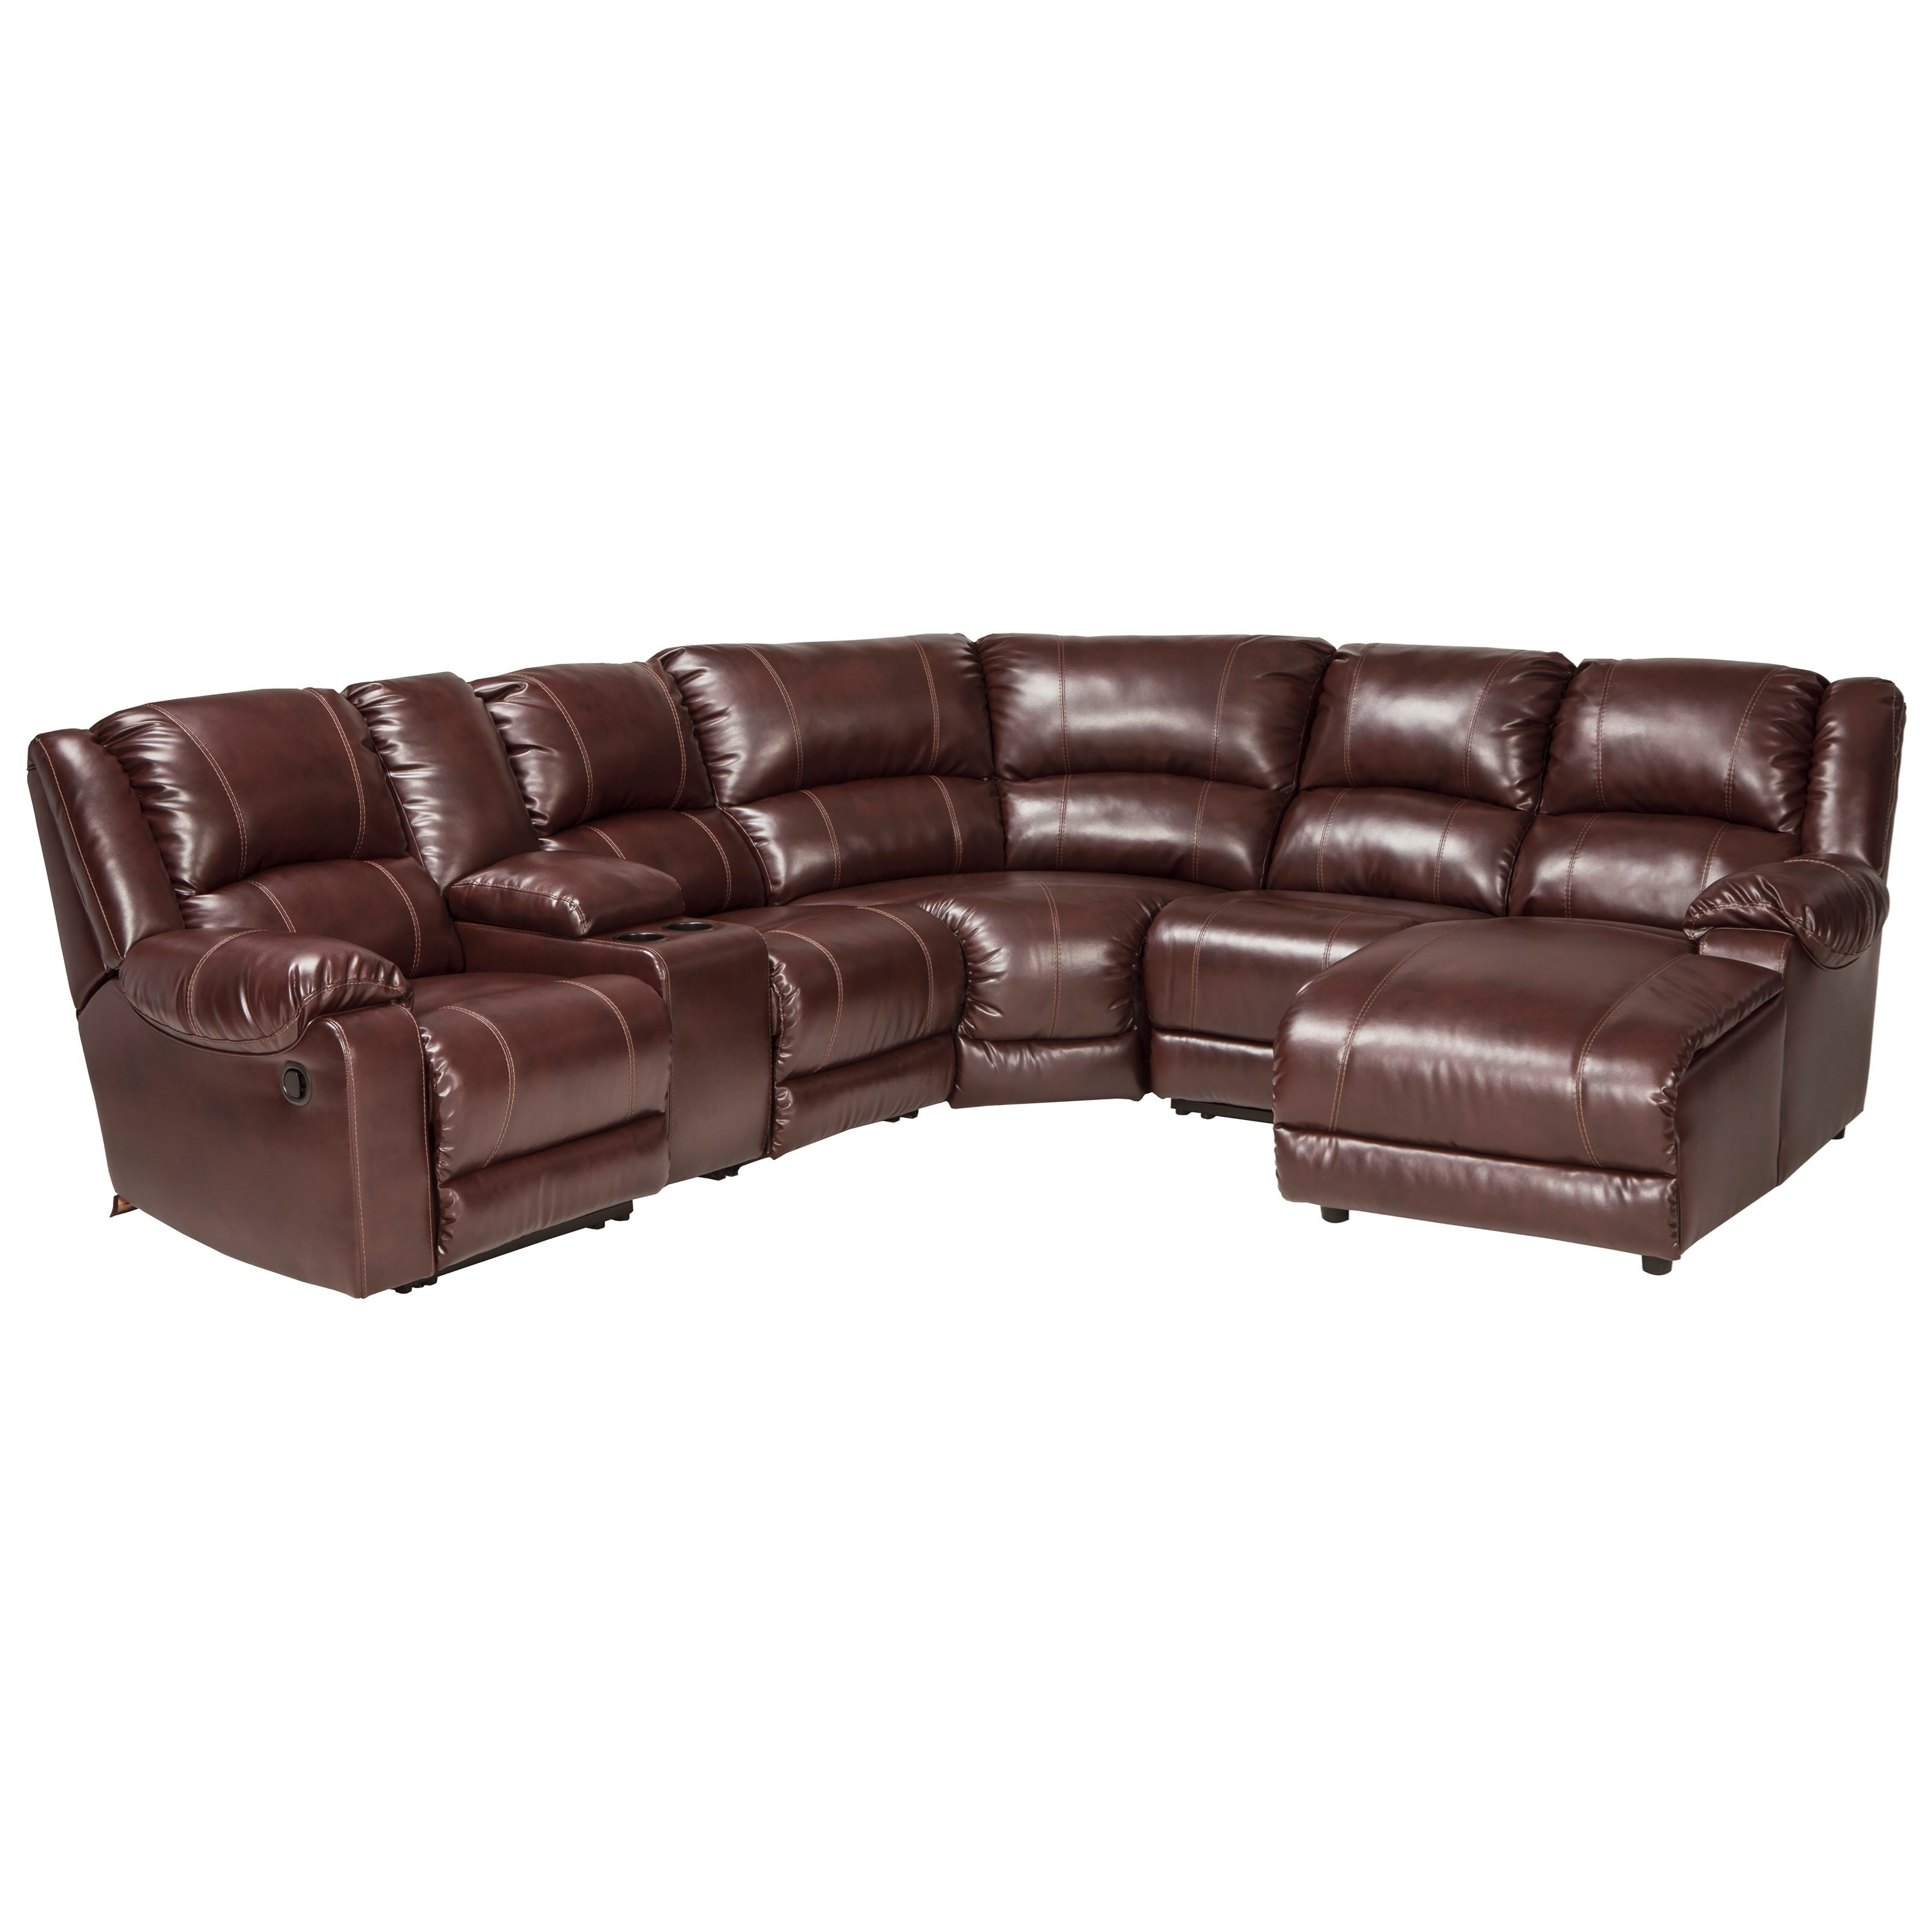 Ashley signature design macgrath durablendr reclining for Sectional sofas with recliners ashley